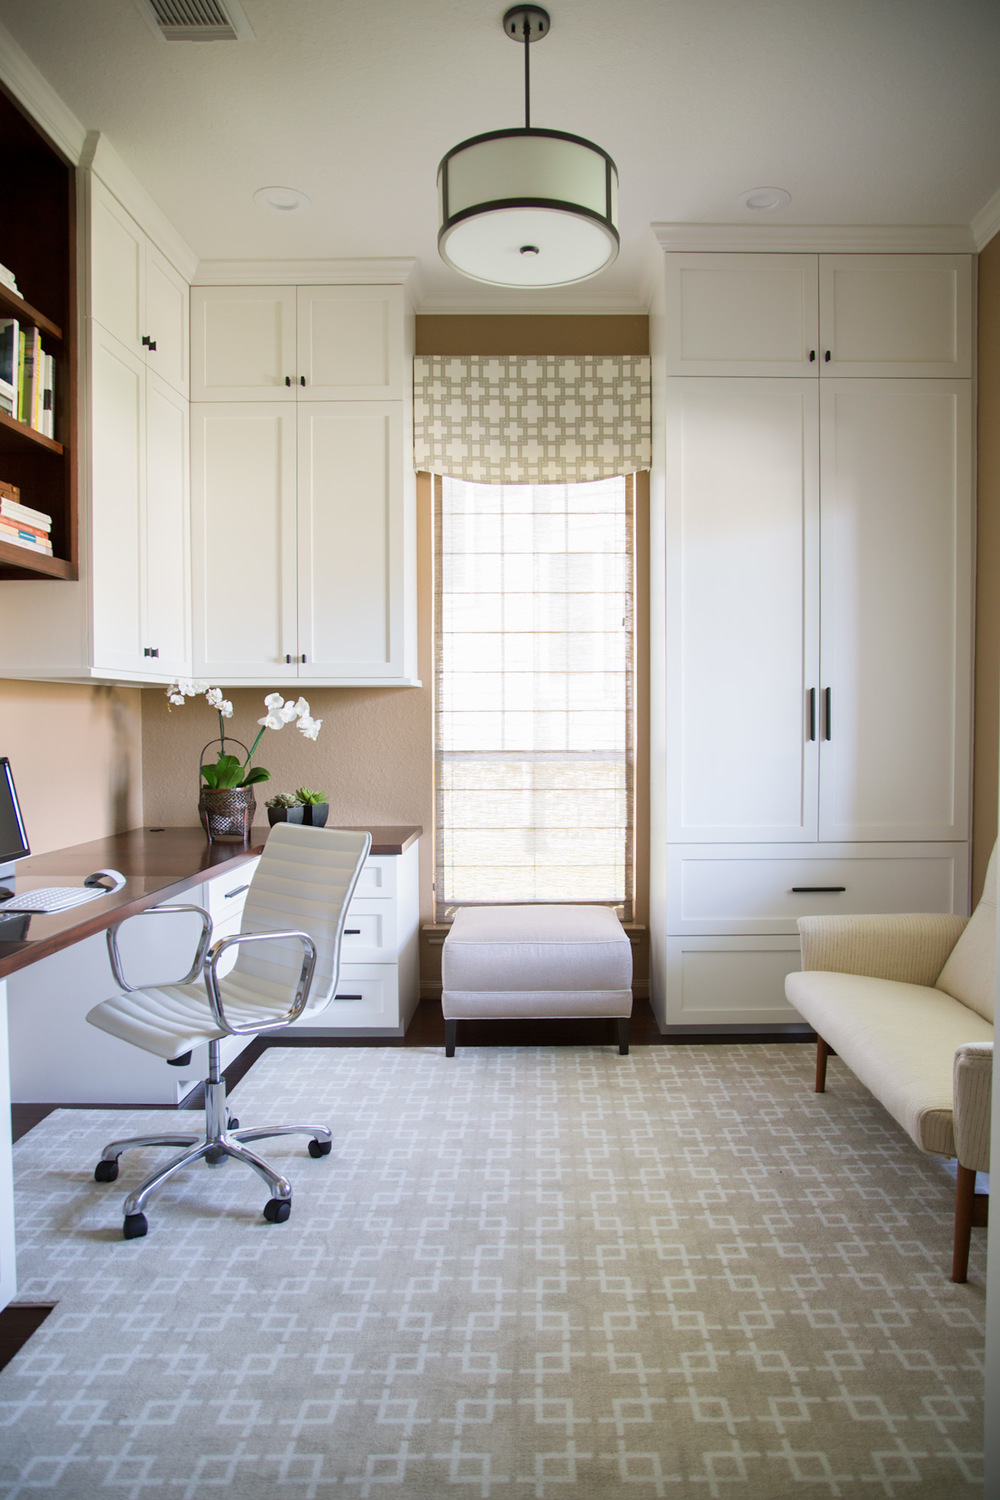 BEFORE & AFTER: A Home Office Is Designed For A Busy Working Couple ...